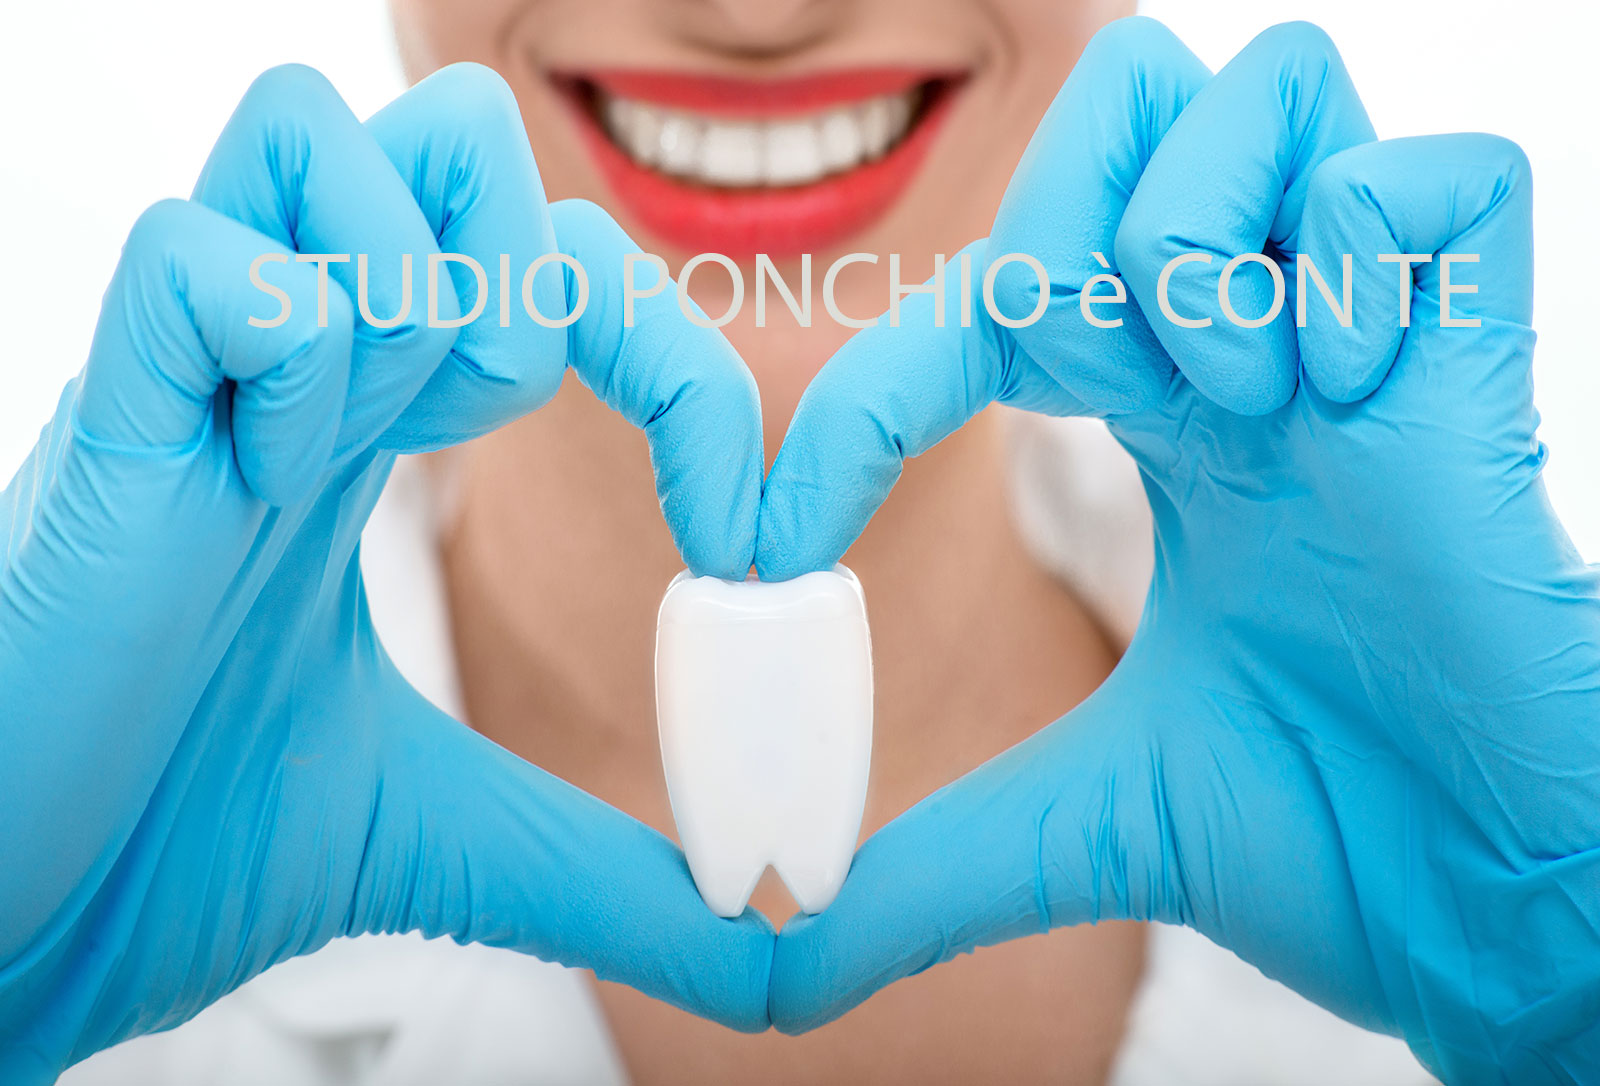 Dentista-Locarno-Studio-Ponchio